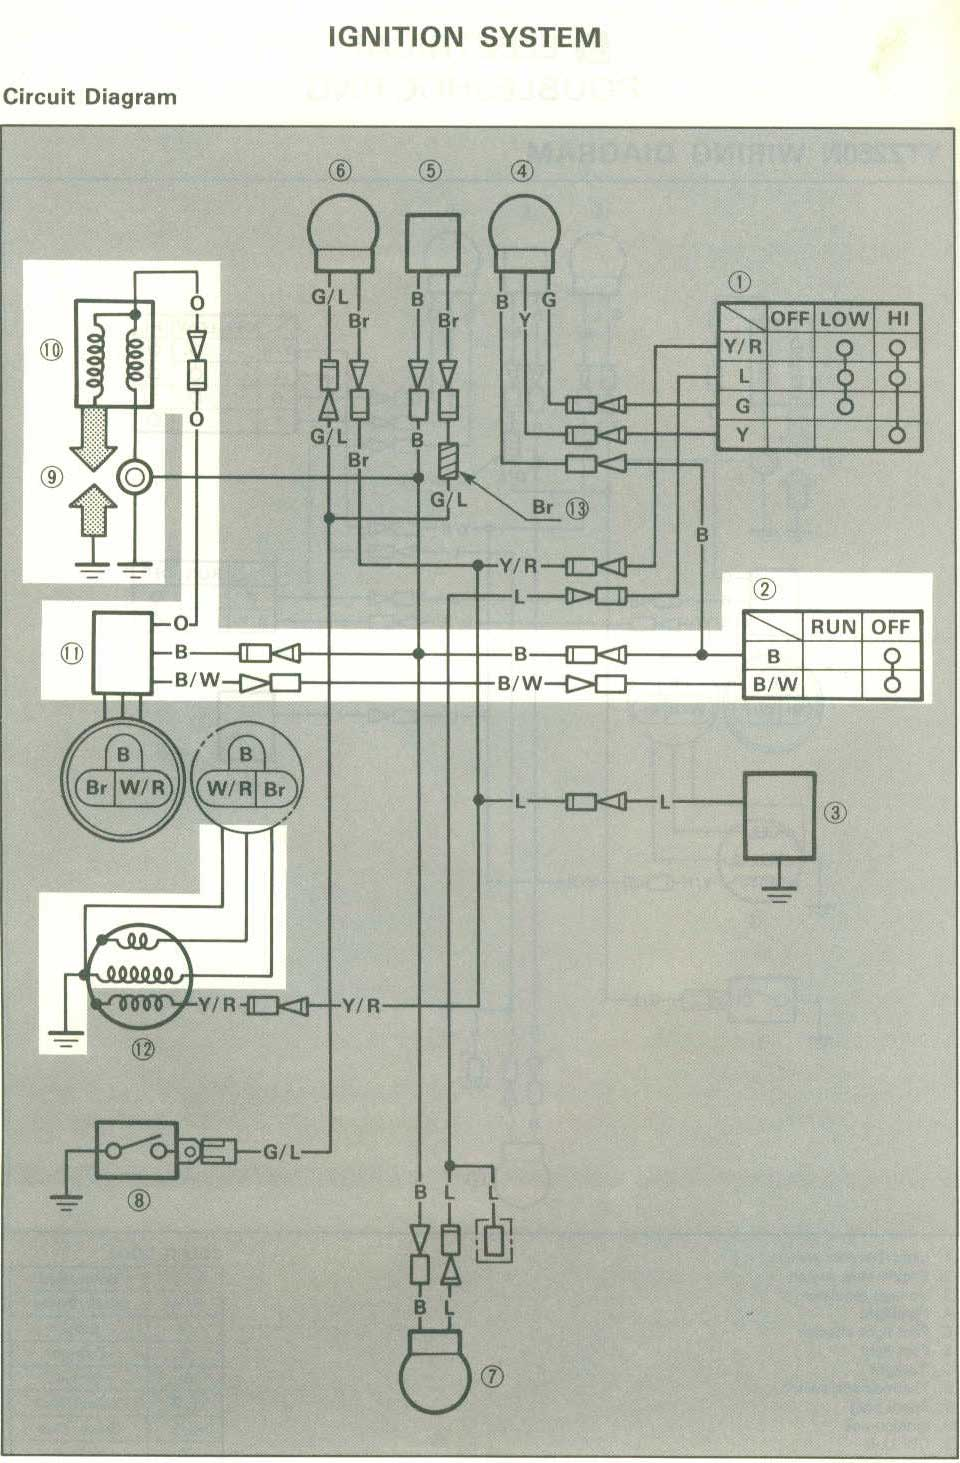 hight resolution of 3 wheeler world tech help yamaha wiring diagrams yamaha 3 wheeler wiring diagram tri z ytz250n